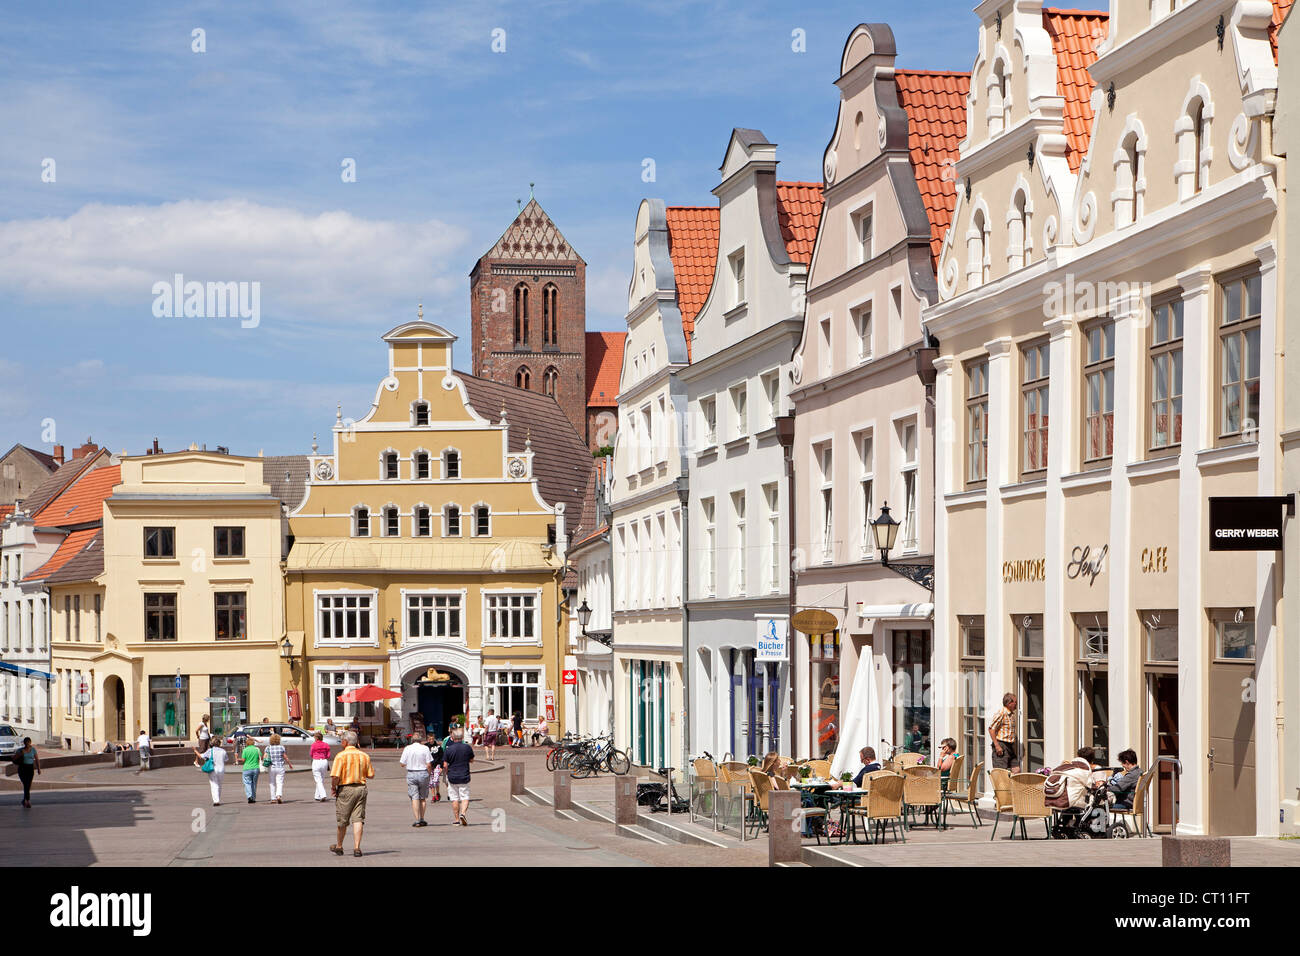 Kraemerstrasse, Wismar, Mecklenburg-West Pomerania, Germany - Stock Image